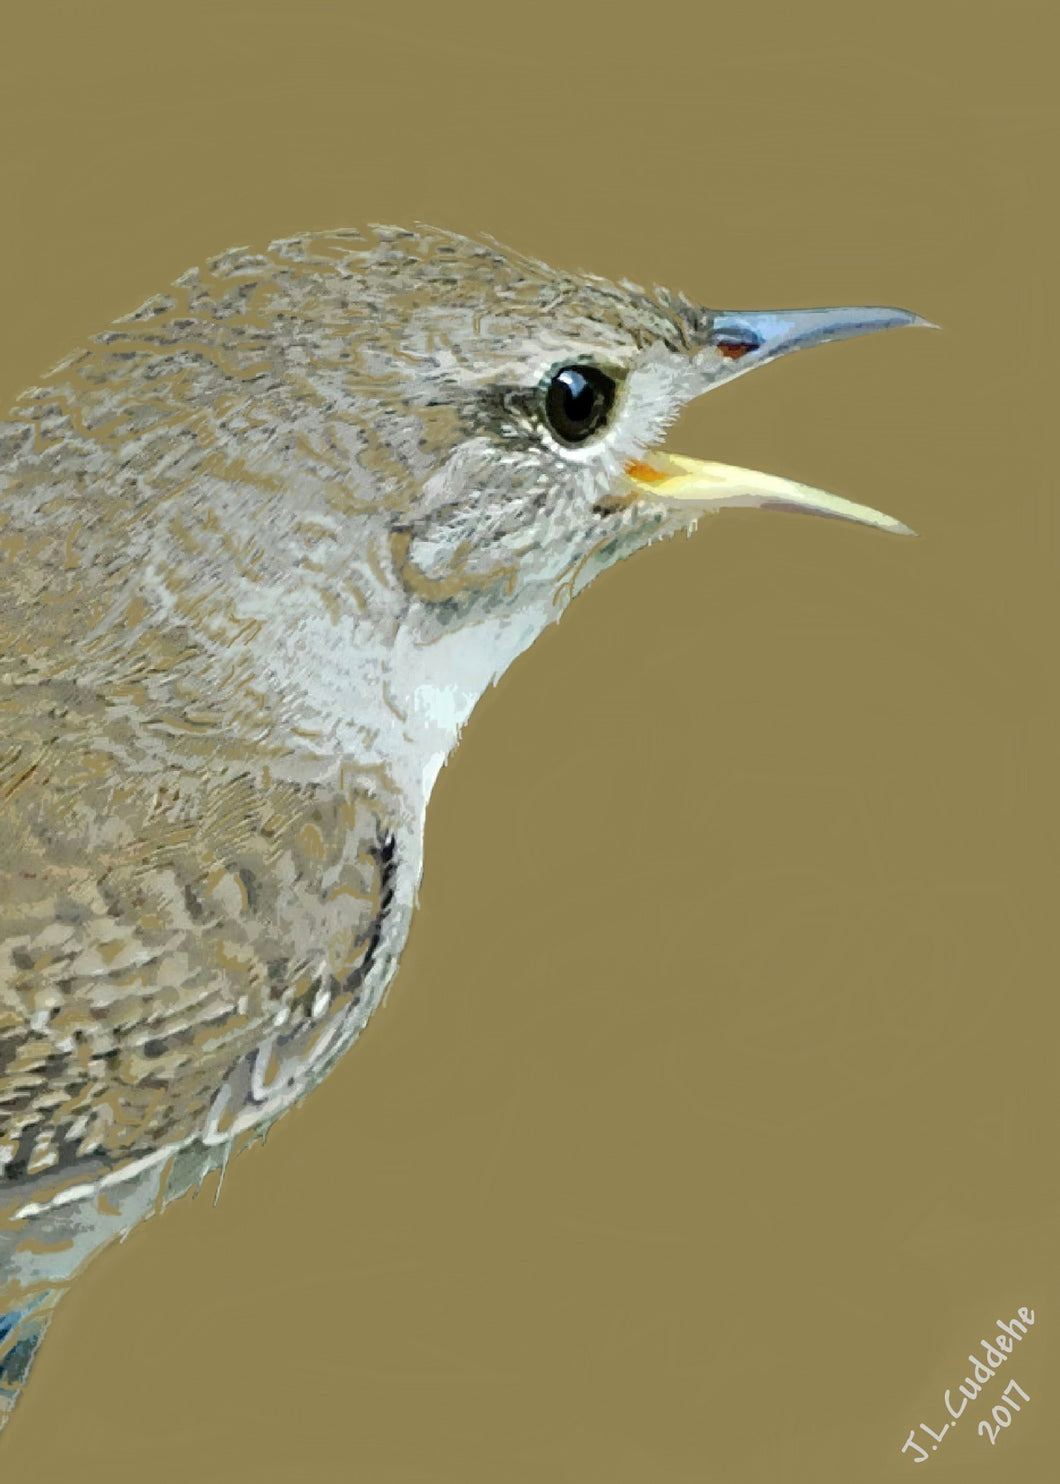 House Wren or Jenny Wren Print in 4 colors, by Judy Link Cuddehe for Found Link Books.